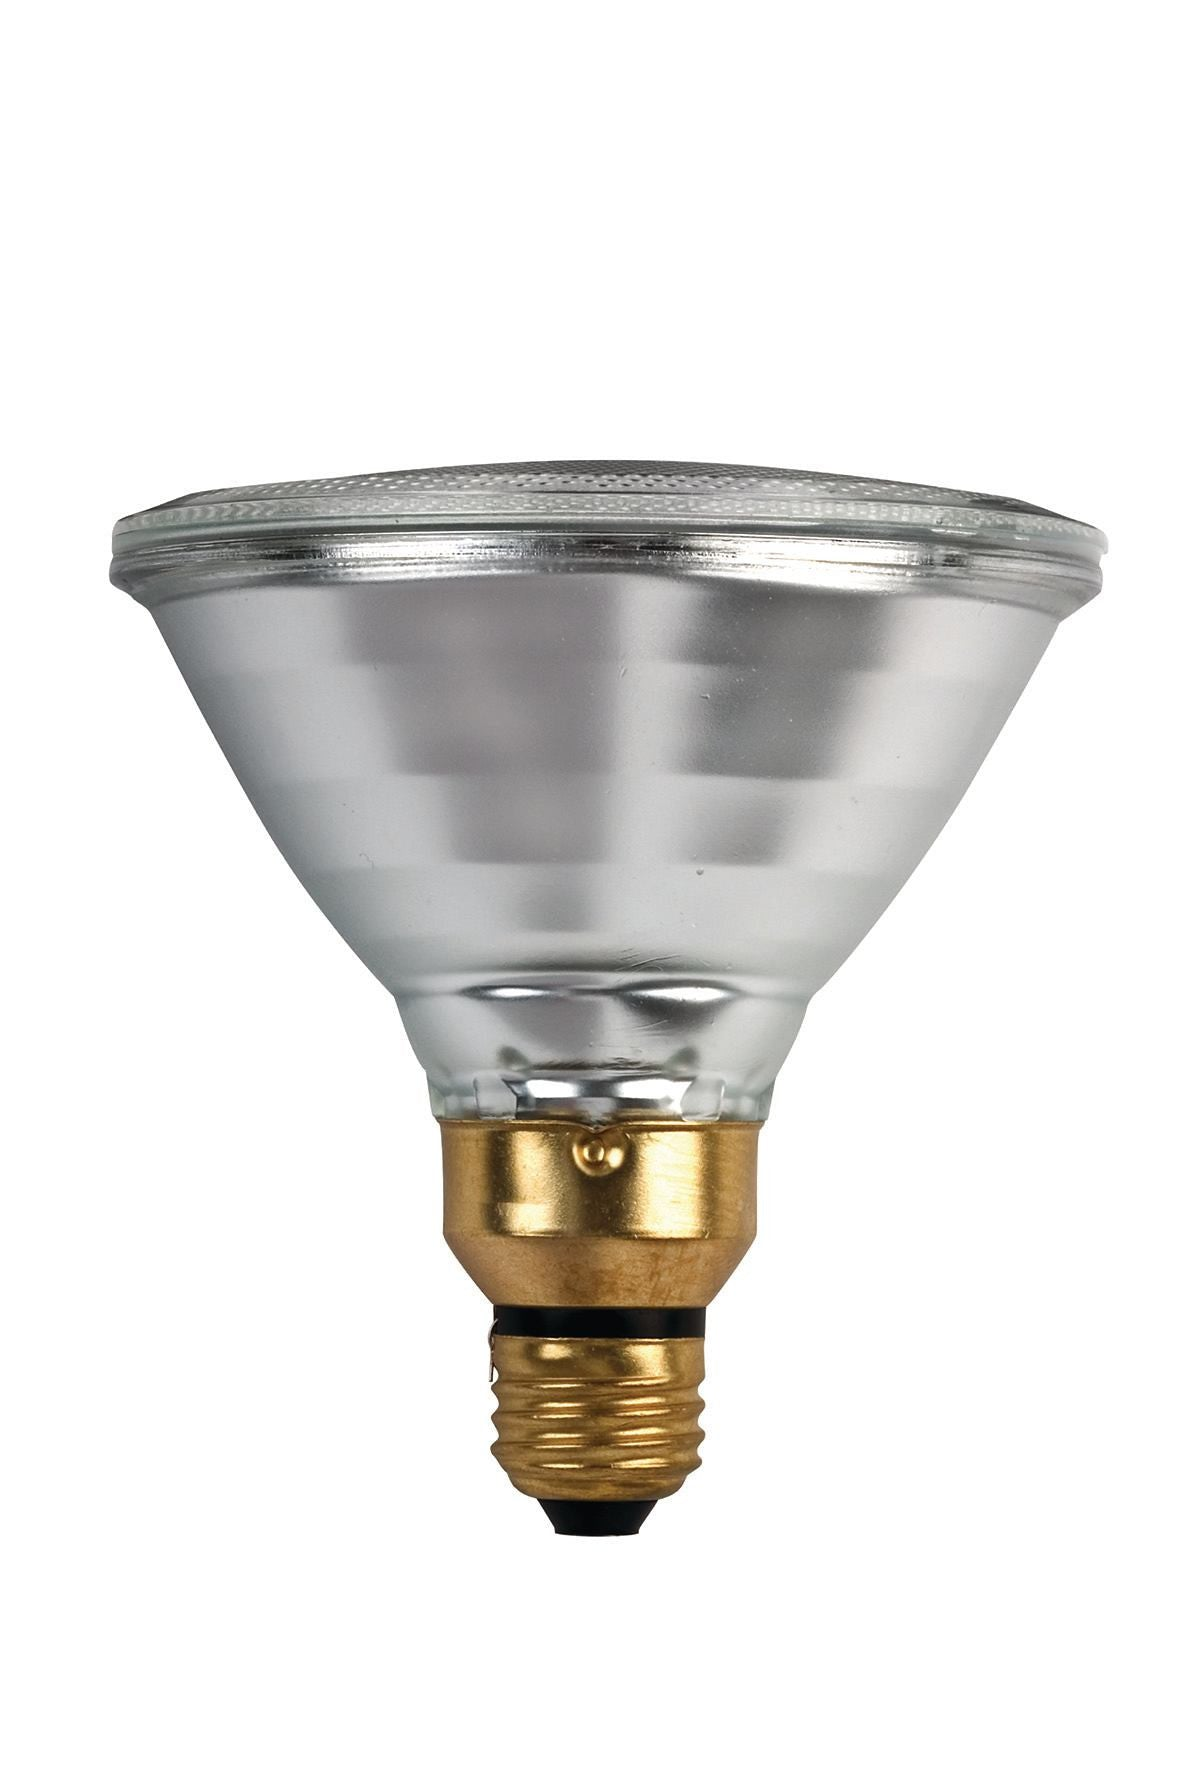 Philips 39w 120v PAR38 FL25 2900K E26 EcoVantage Halogen Light Bulb